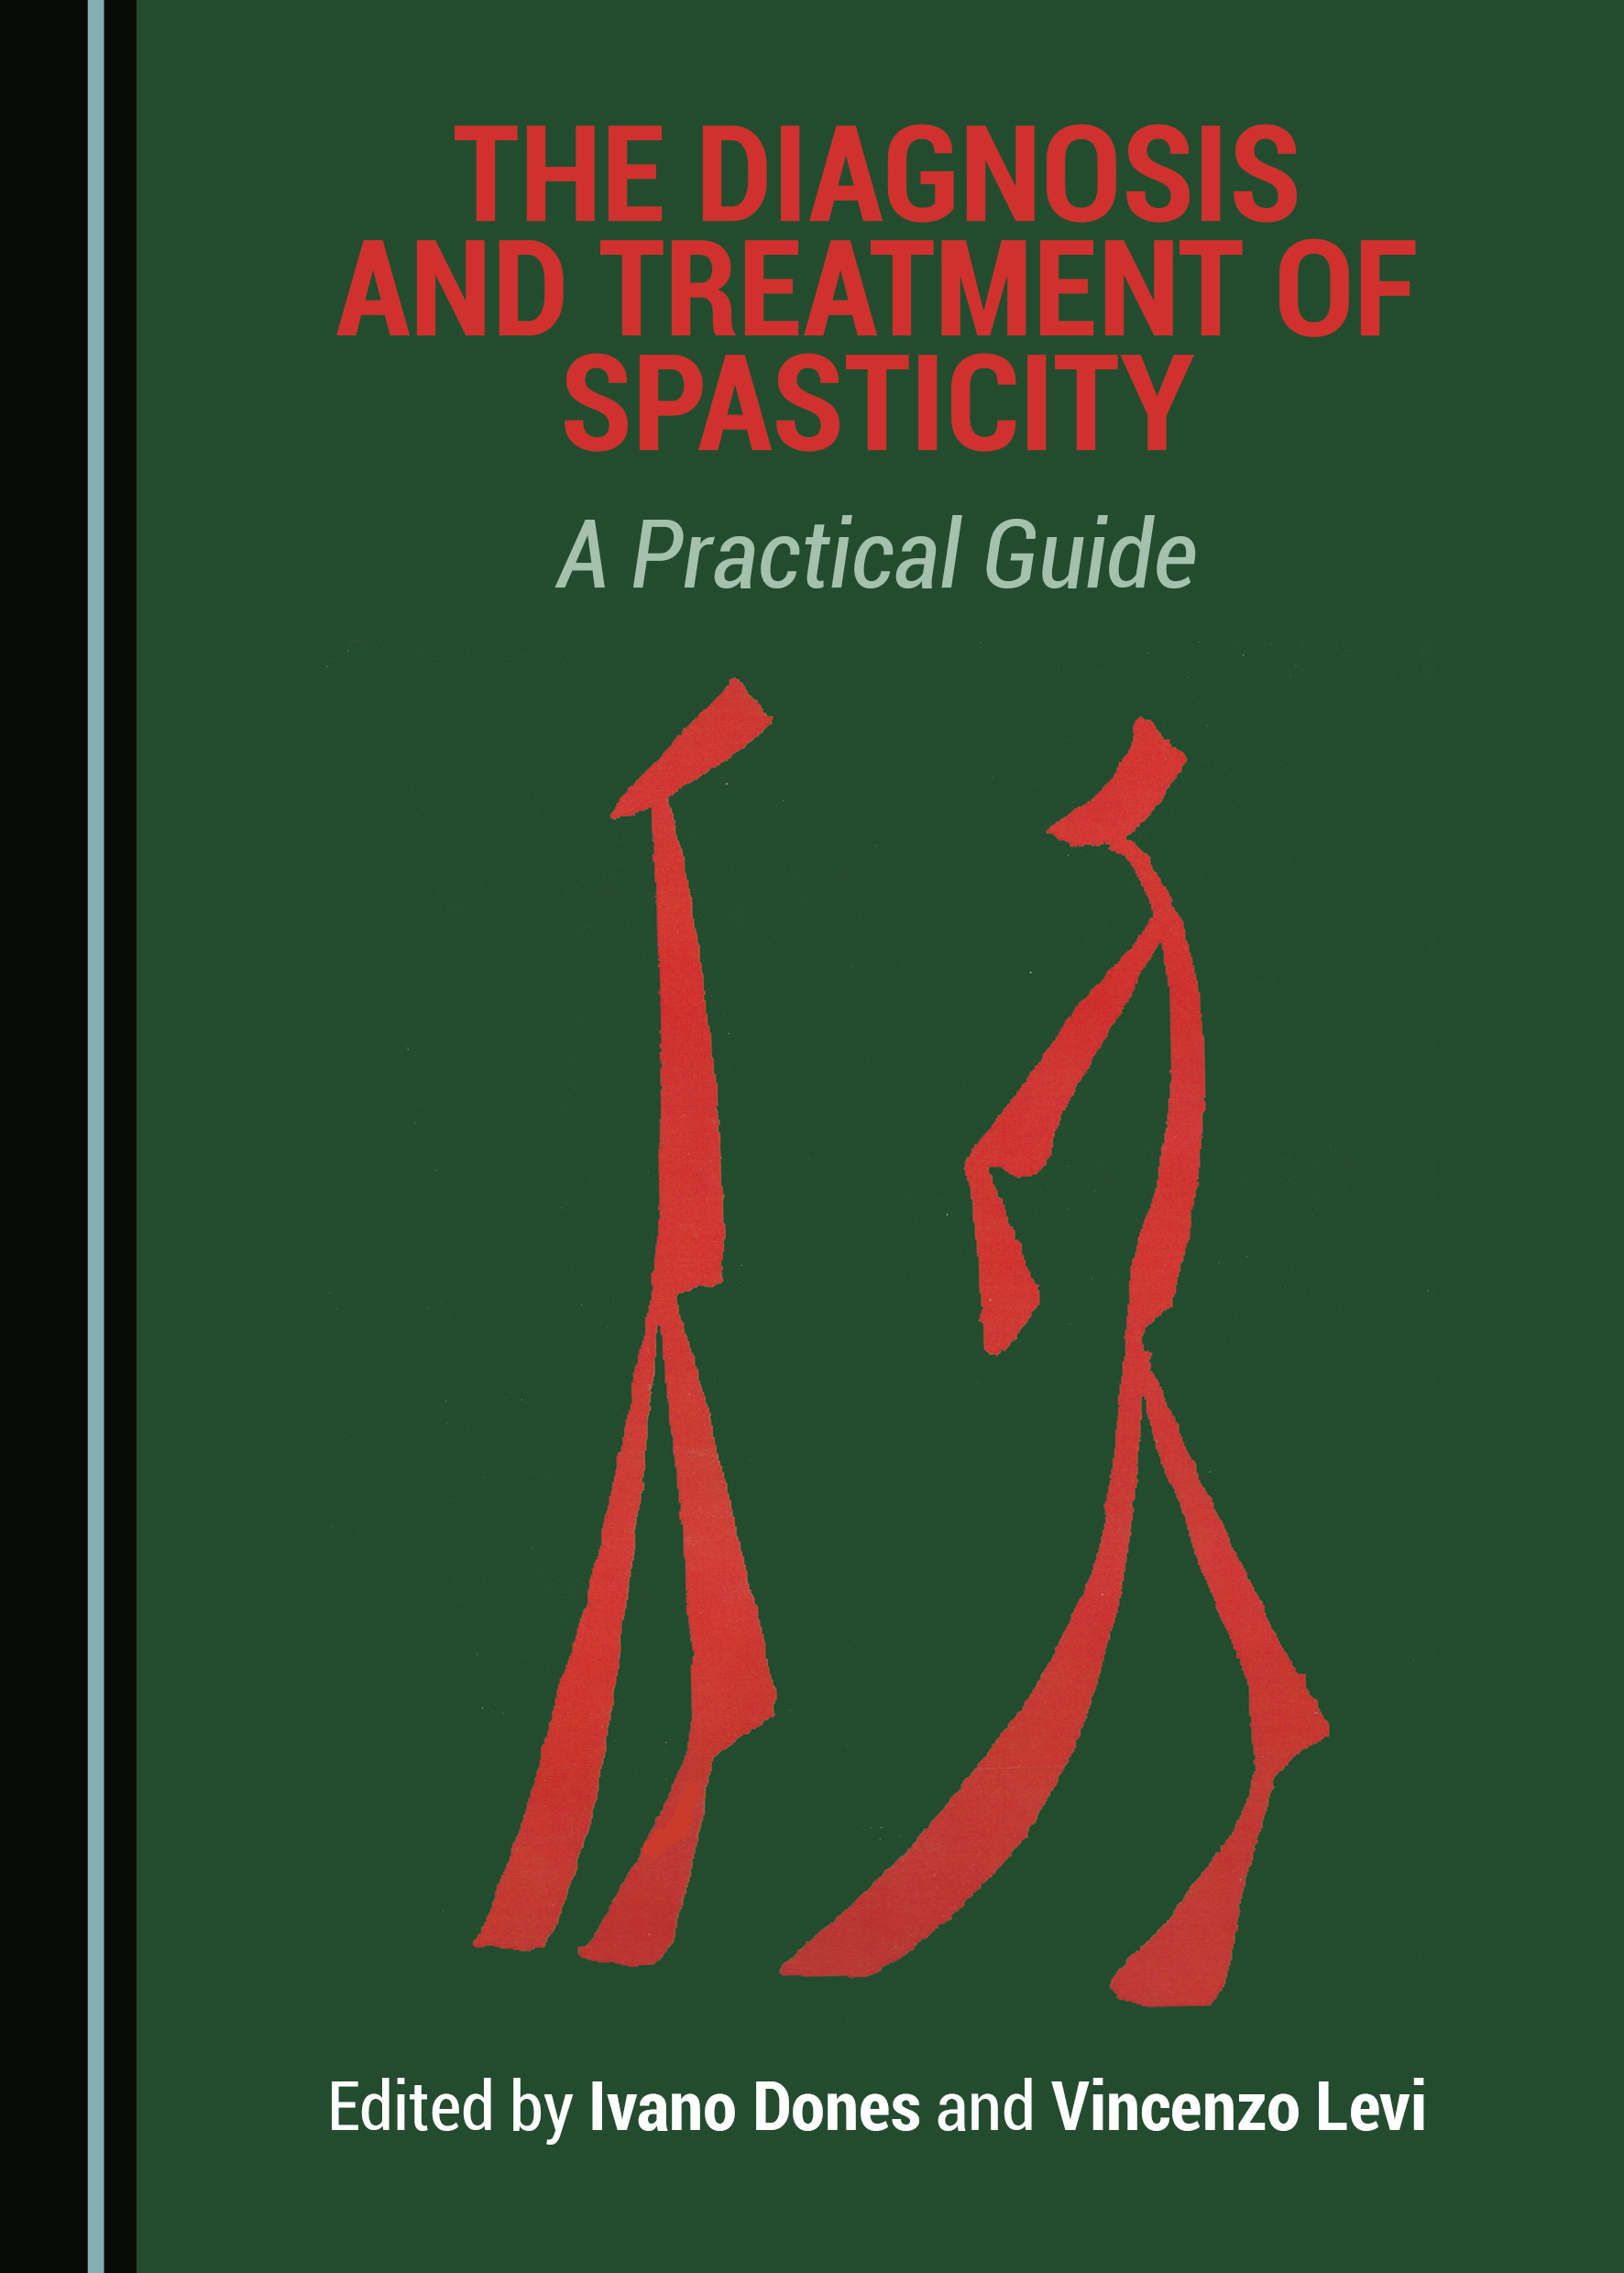 The Diagnosis and Treatment of Spasticity: A Practical Guide